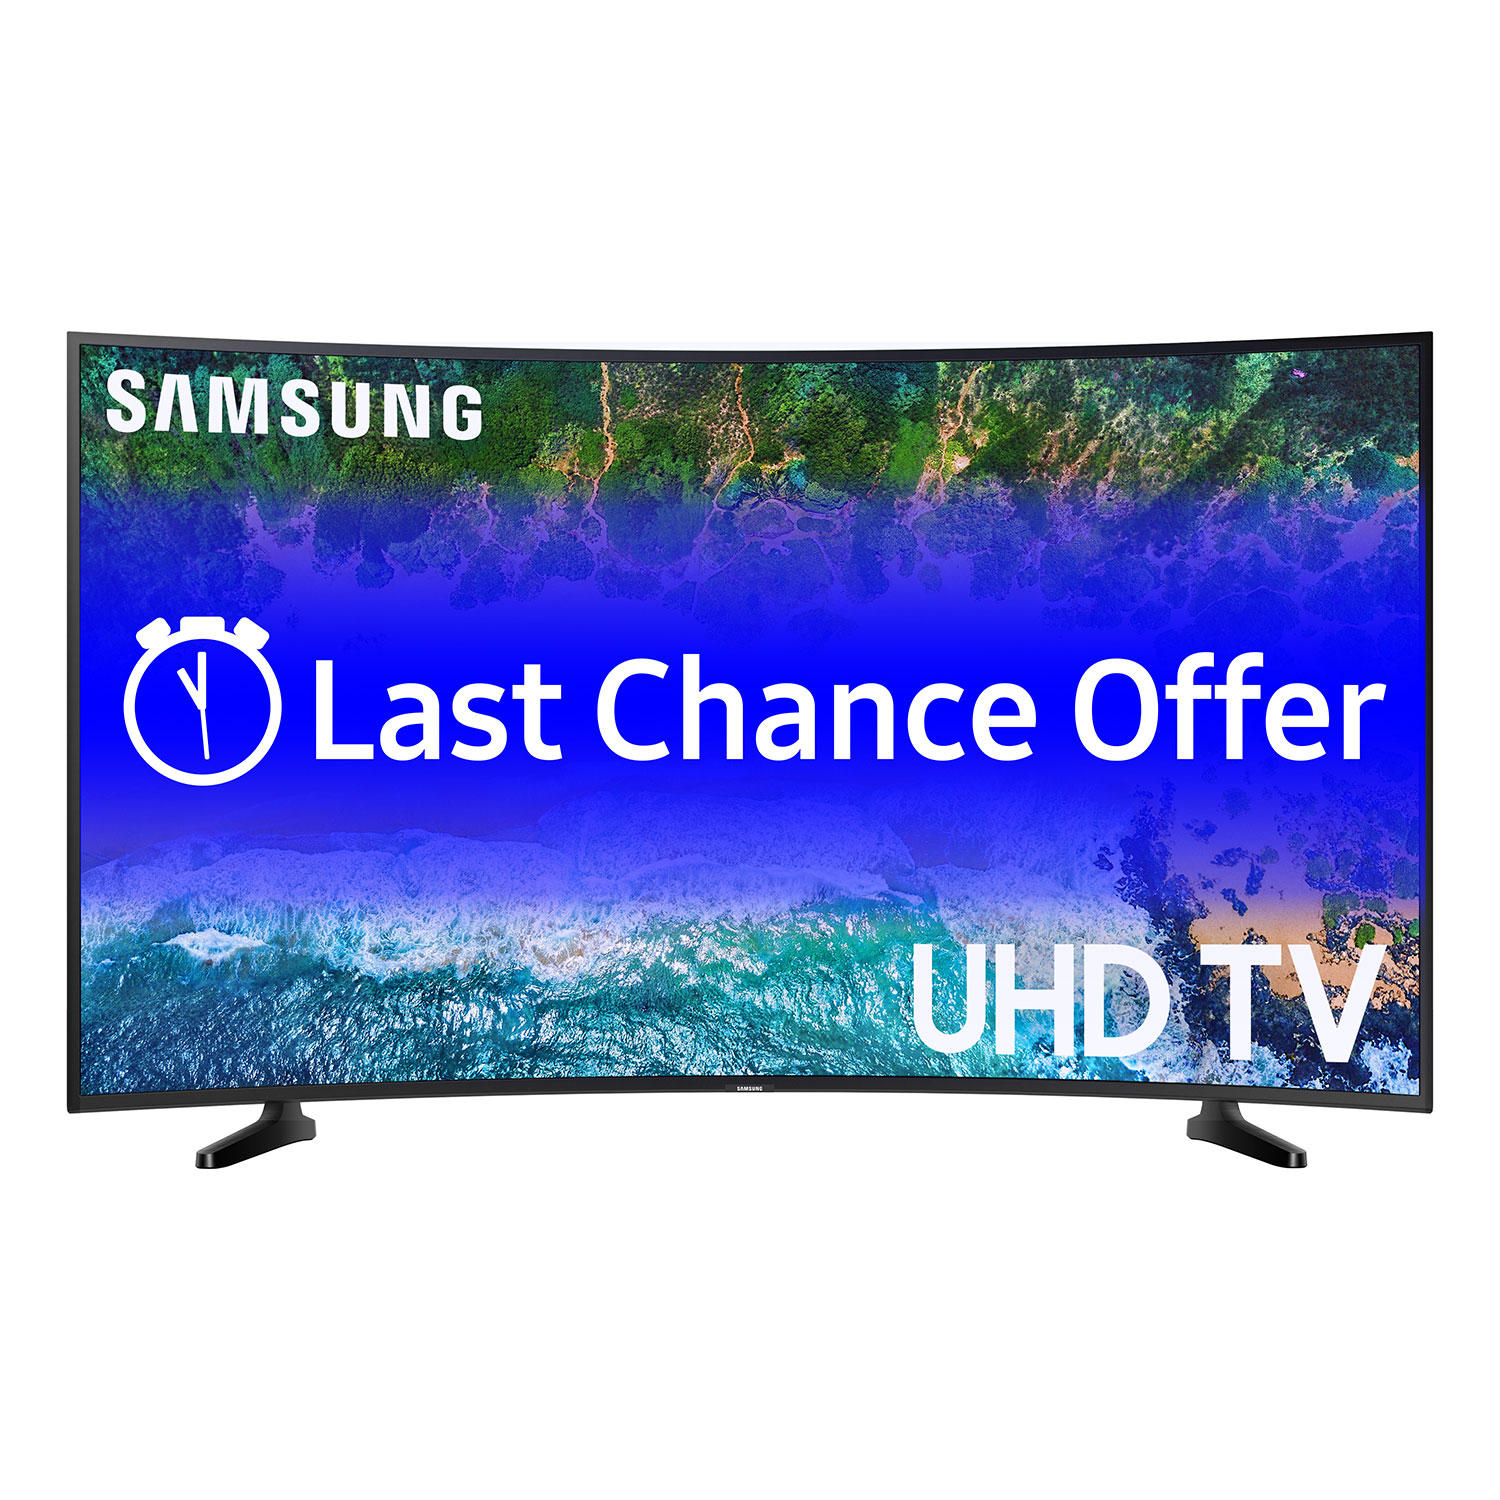 "Samsung UN49NU6300FXZA 49"" Curved 4K Smart LED UHDTV"